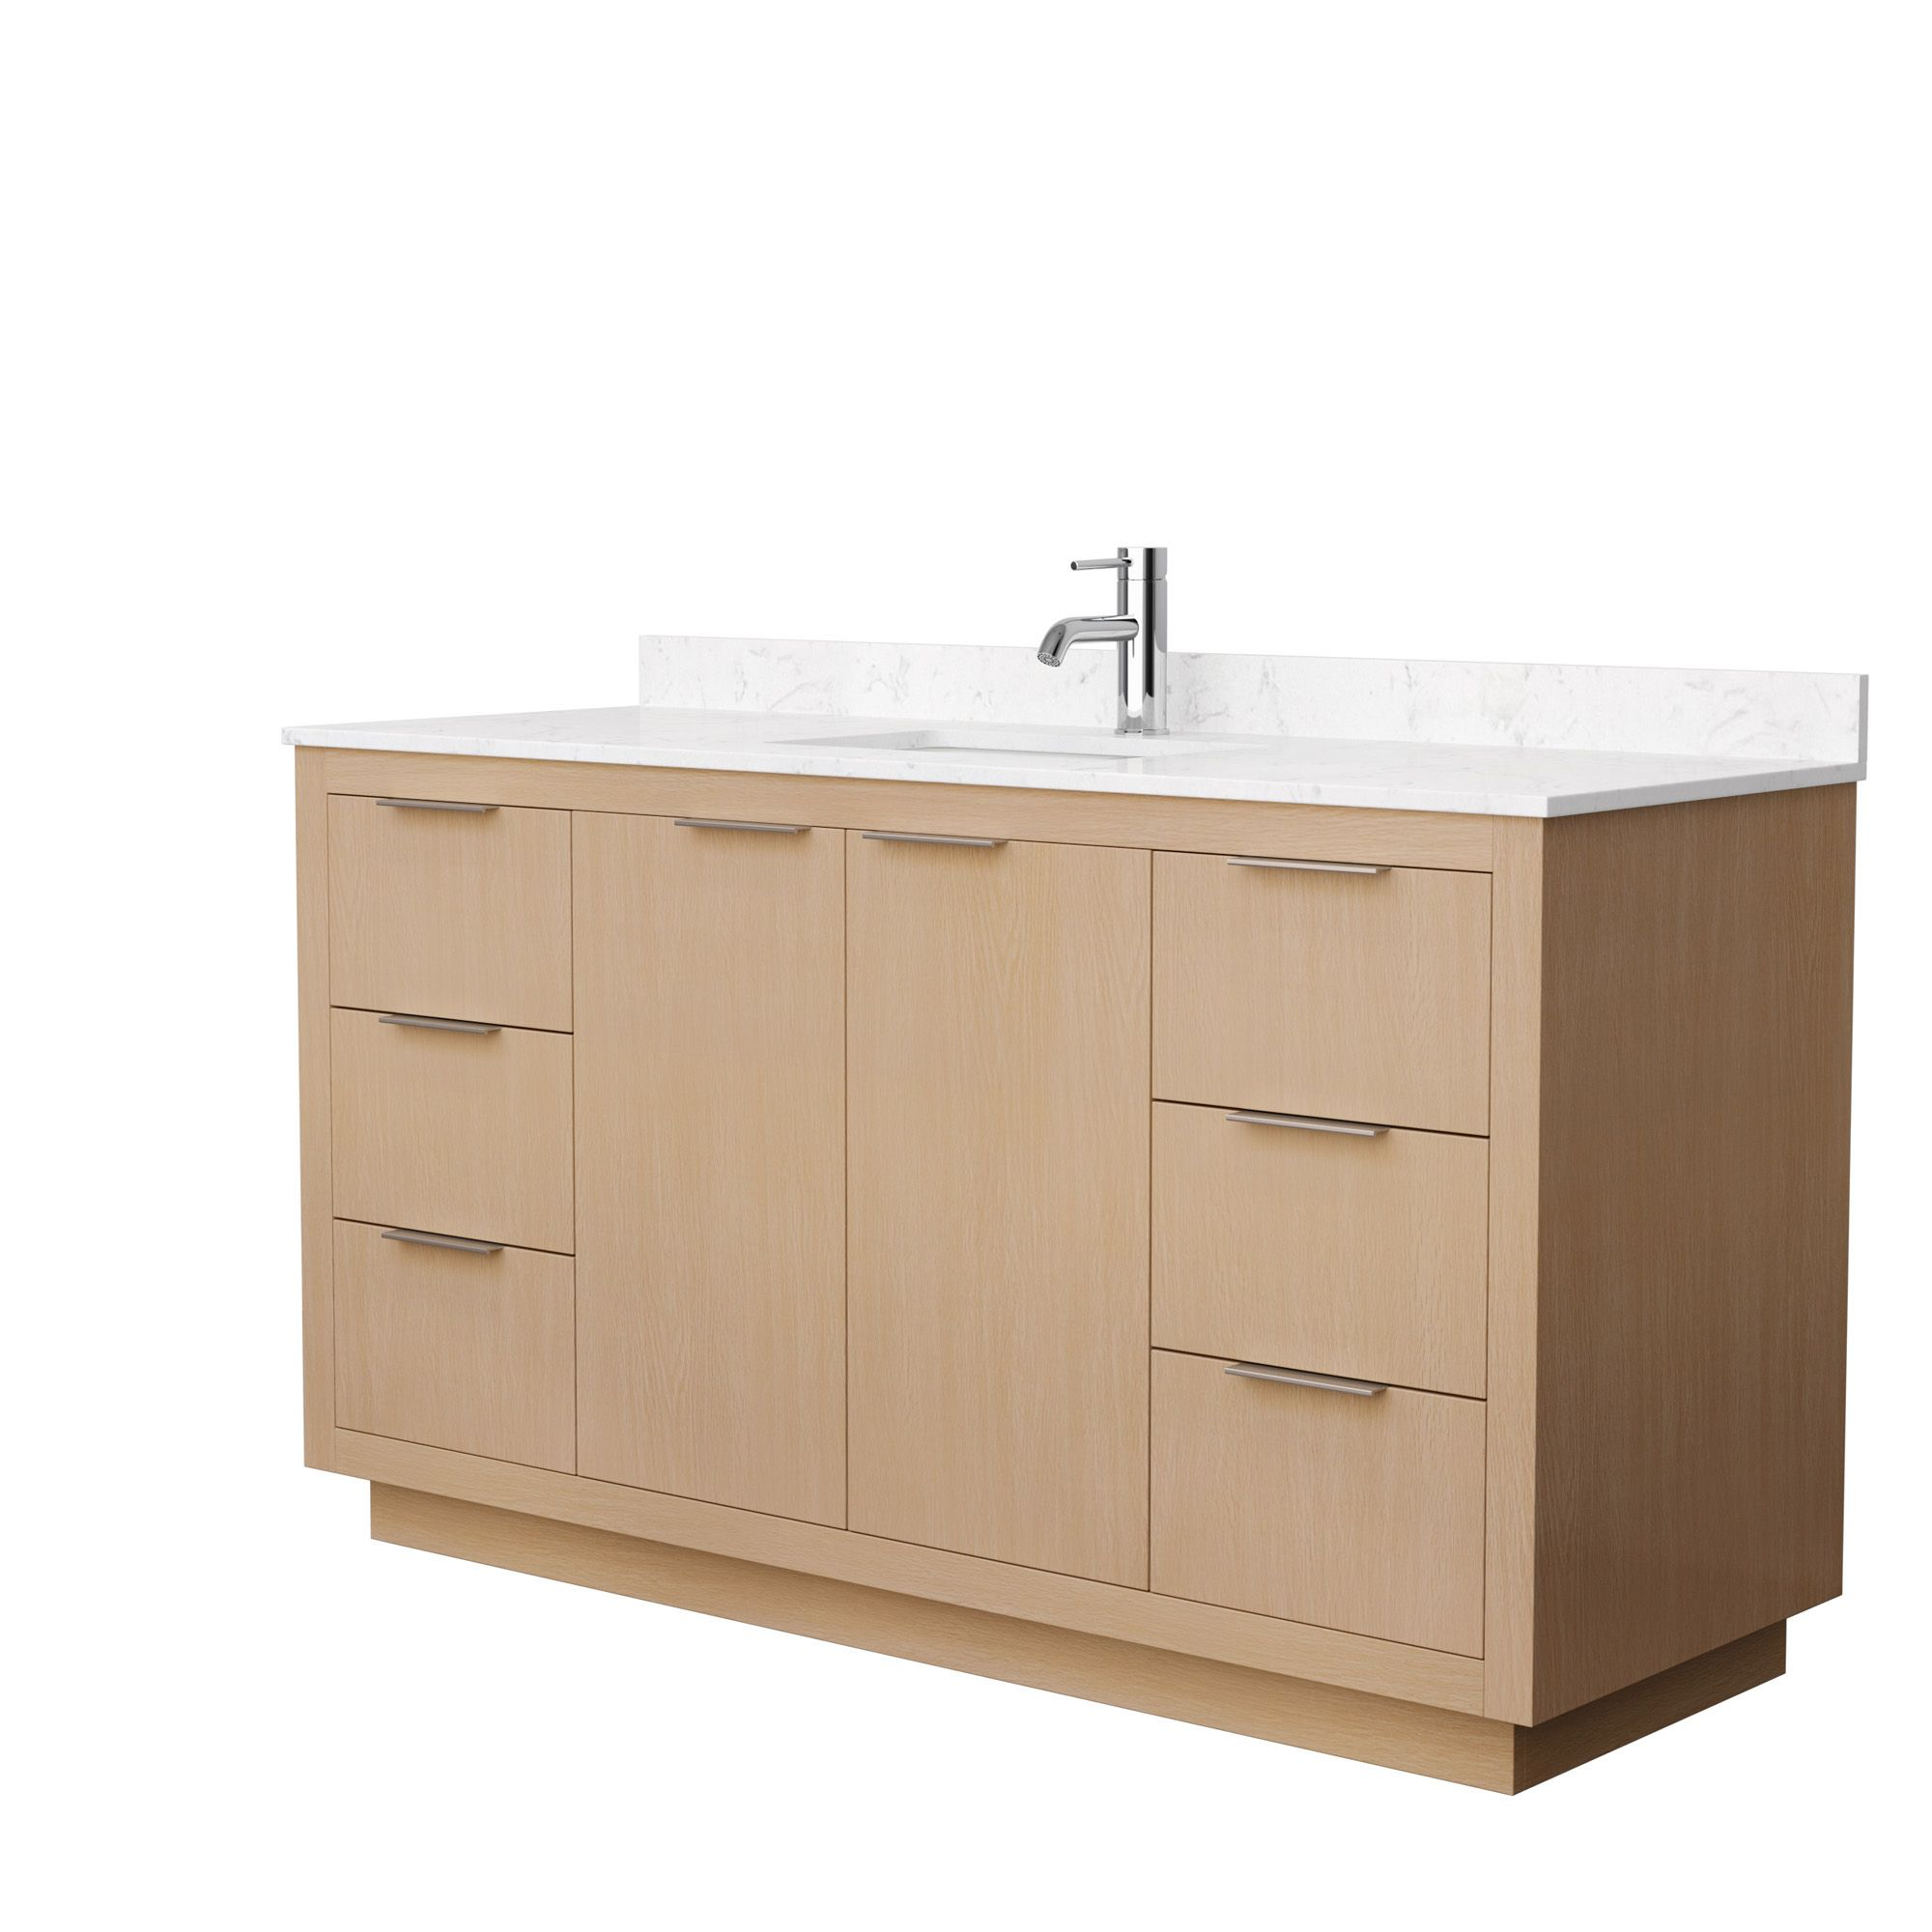 """60"""" Single Bathroom Vanity in Light Straw with Countertop and Hardware Options"""